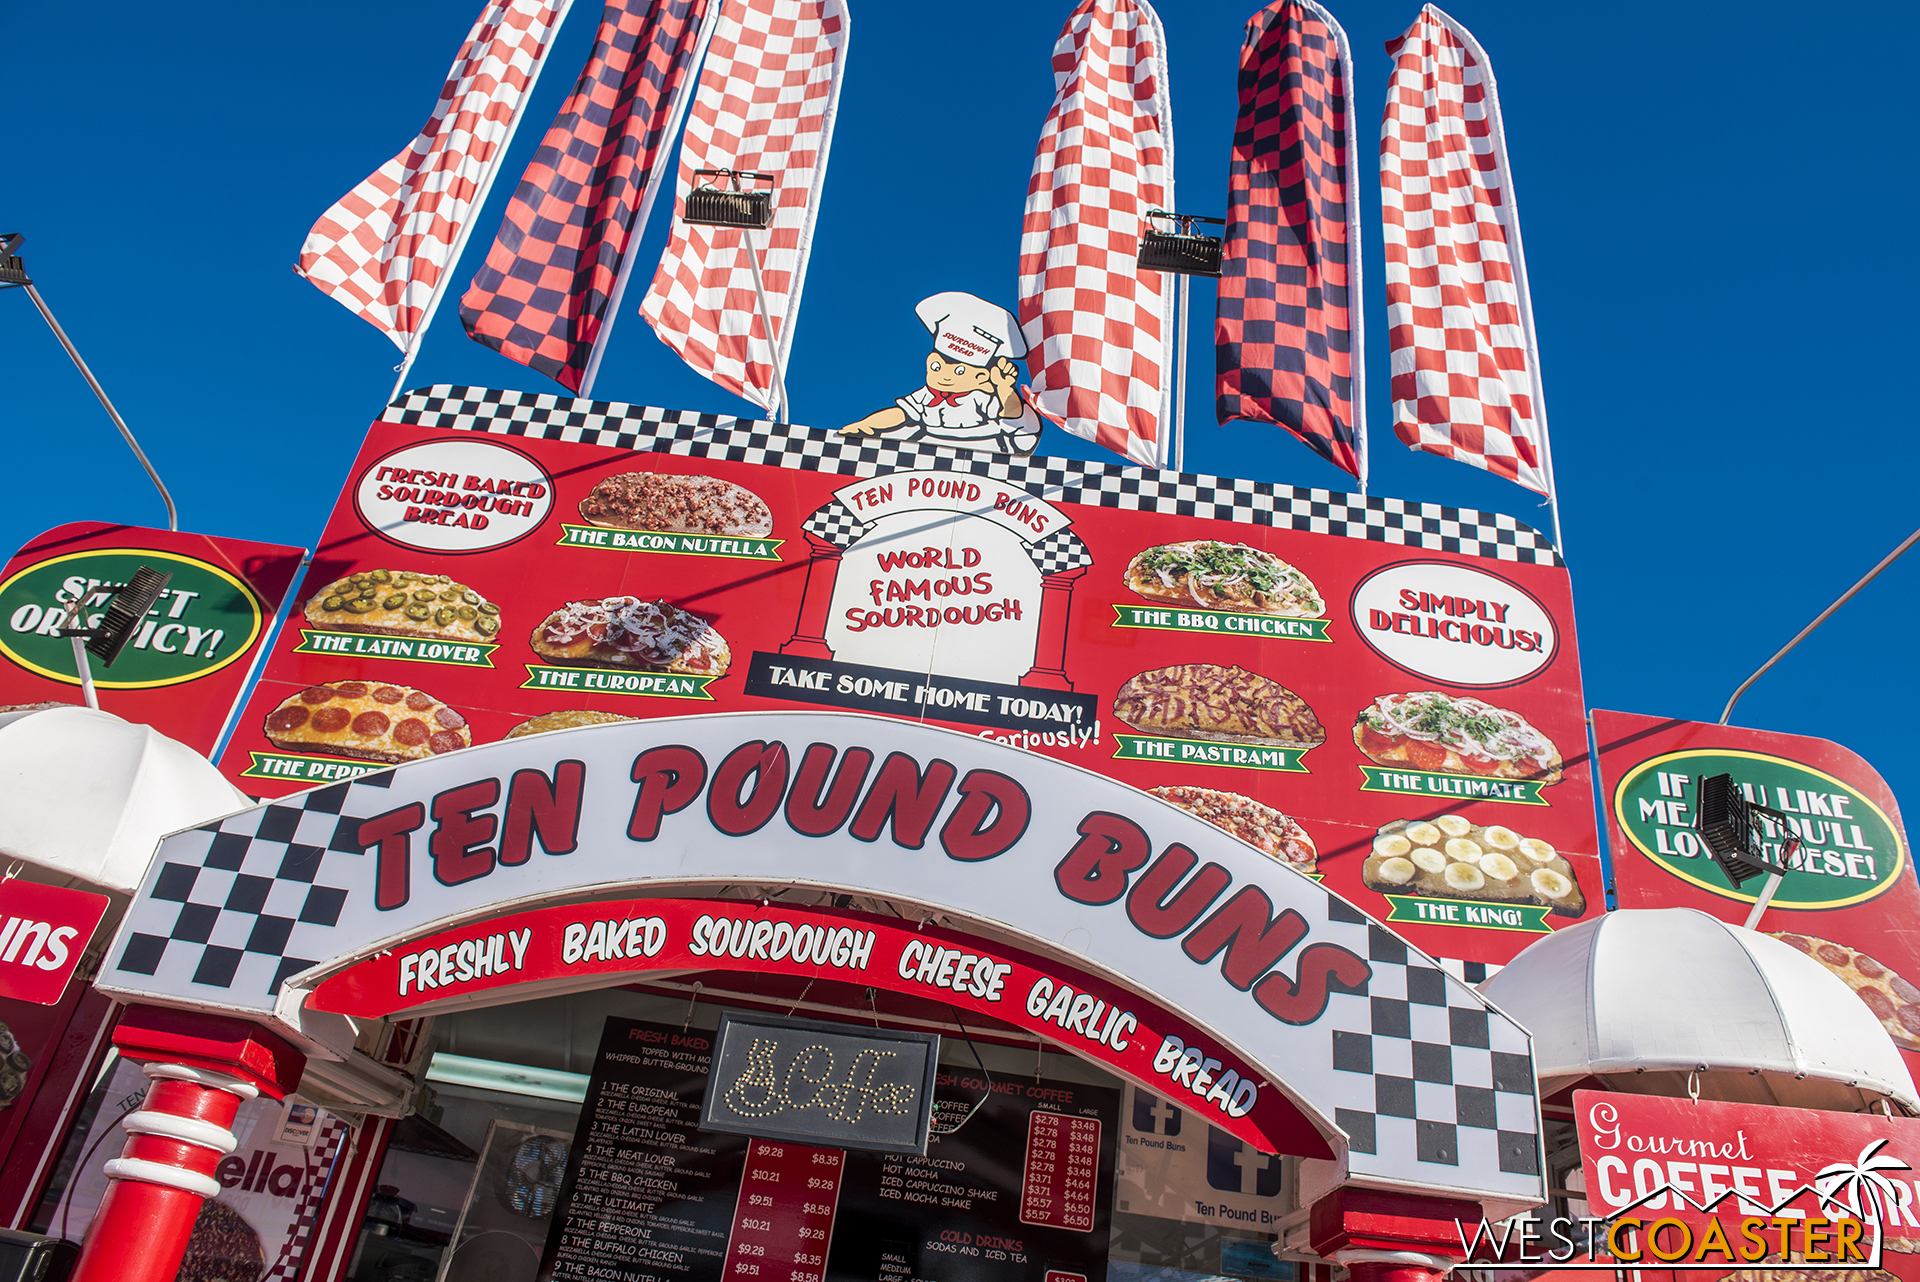 """Ten Pound Buns, in the Centennial Farm area by the Meadows Stage, has a new """"Sugar High"""" stacked bread item that peanut butter, chocolate chips, marshmallow, honey drizzle, and more sweets on top for a diabetic overload."""